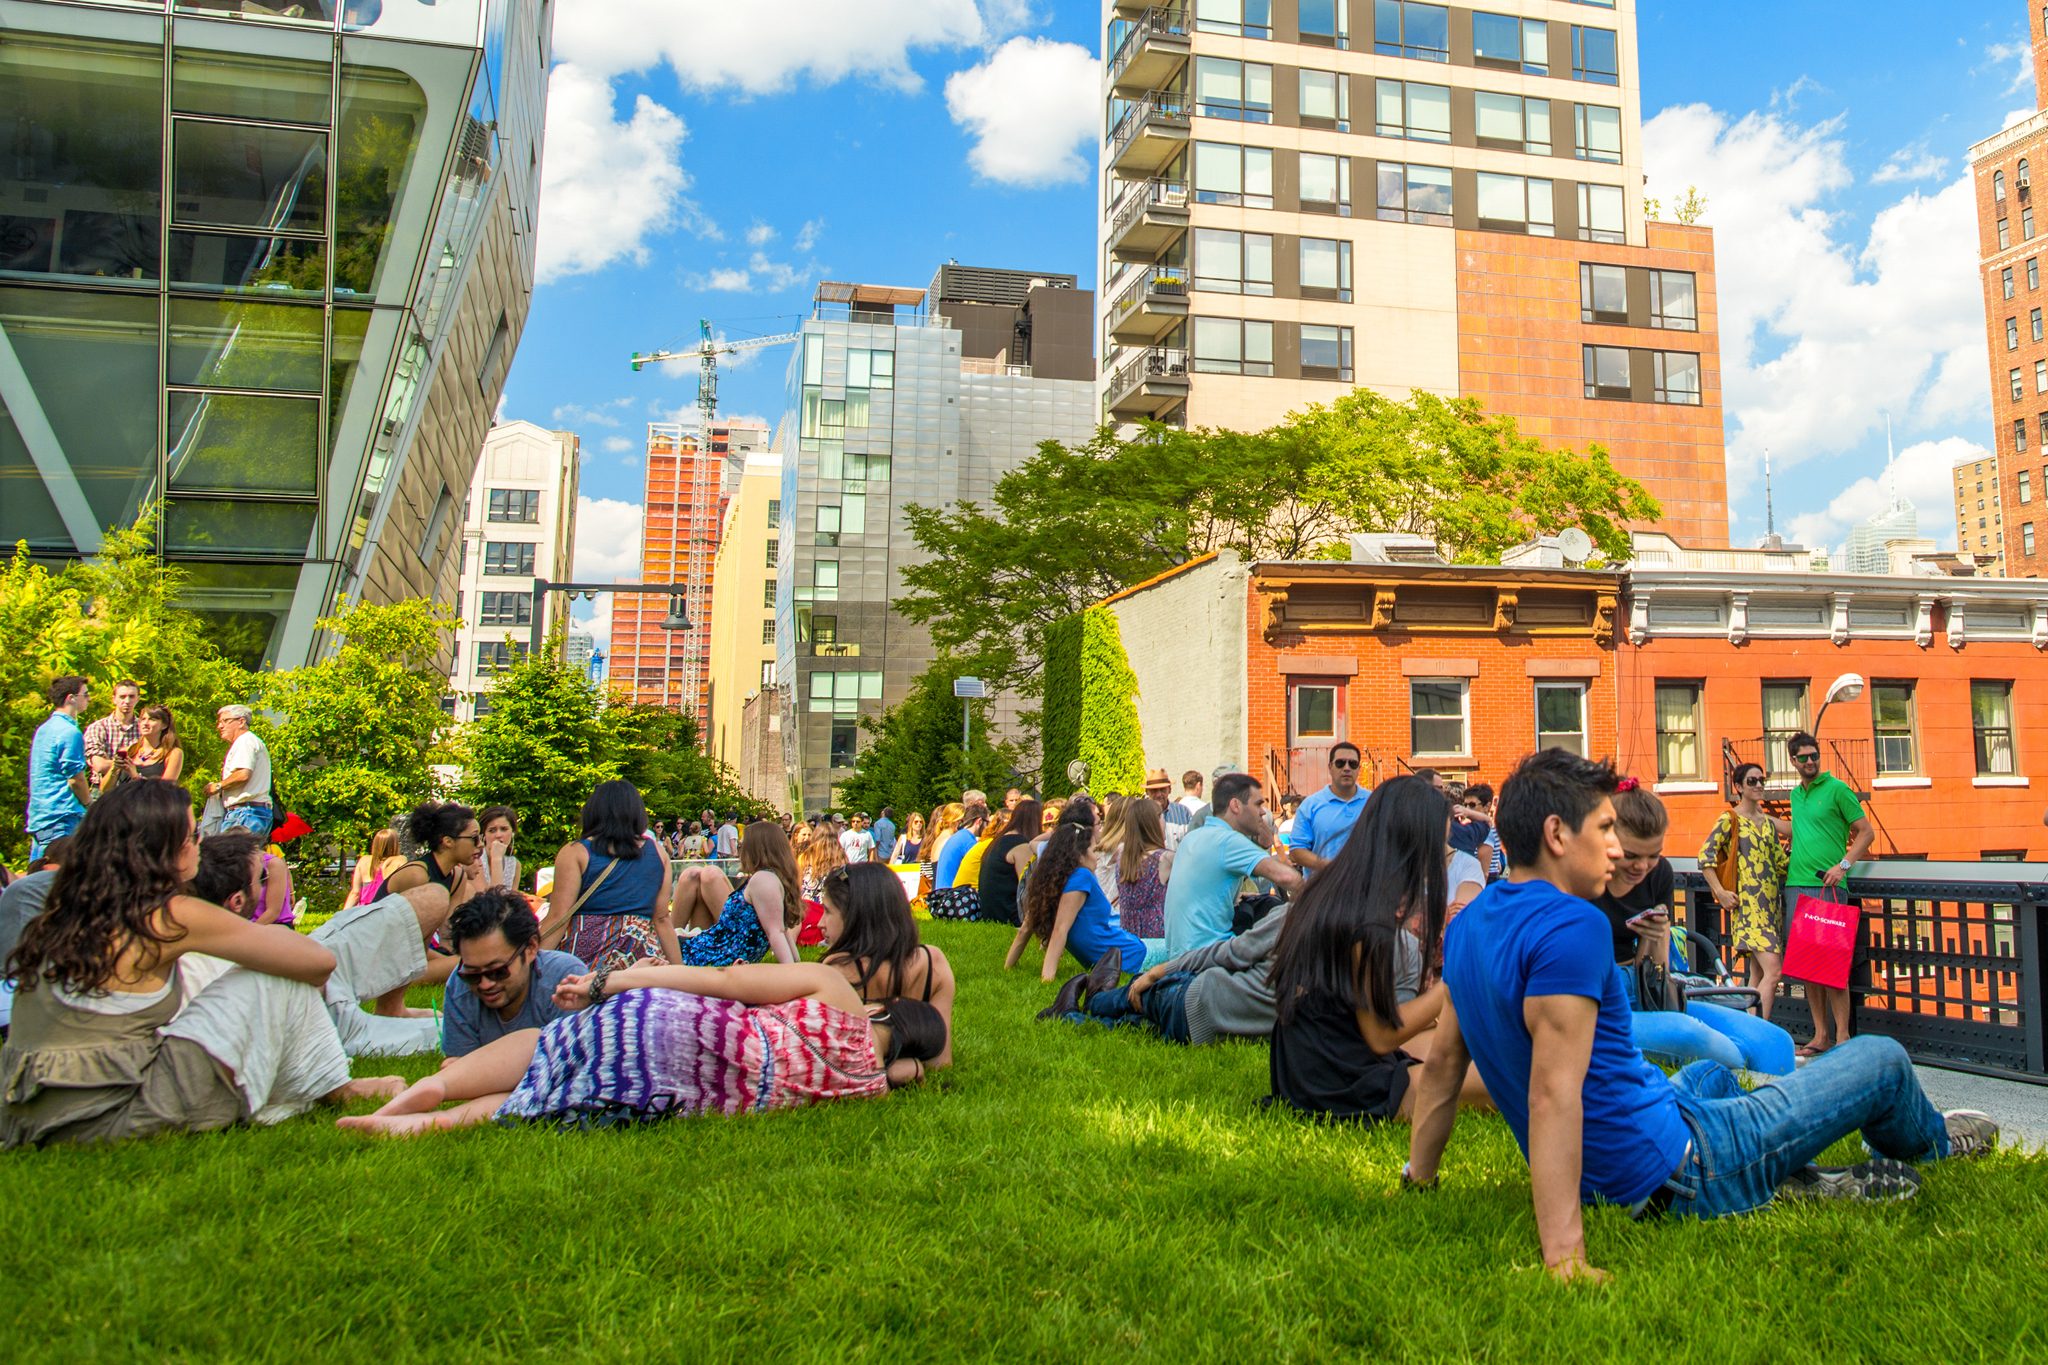 The best summer events in NYC?